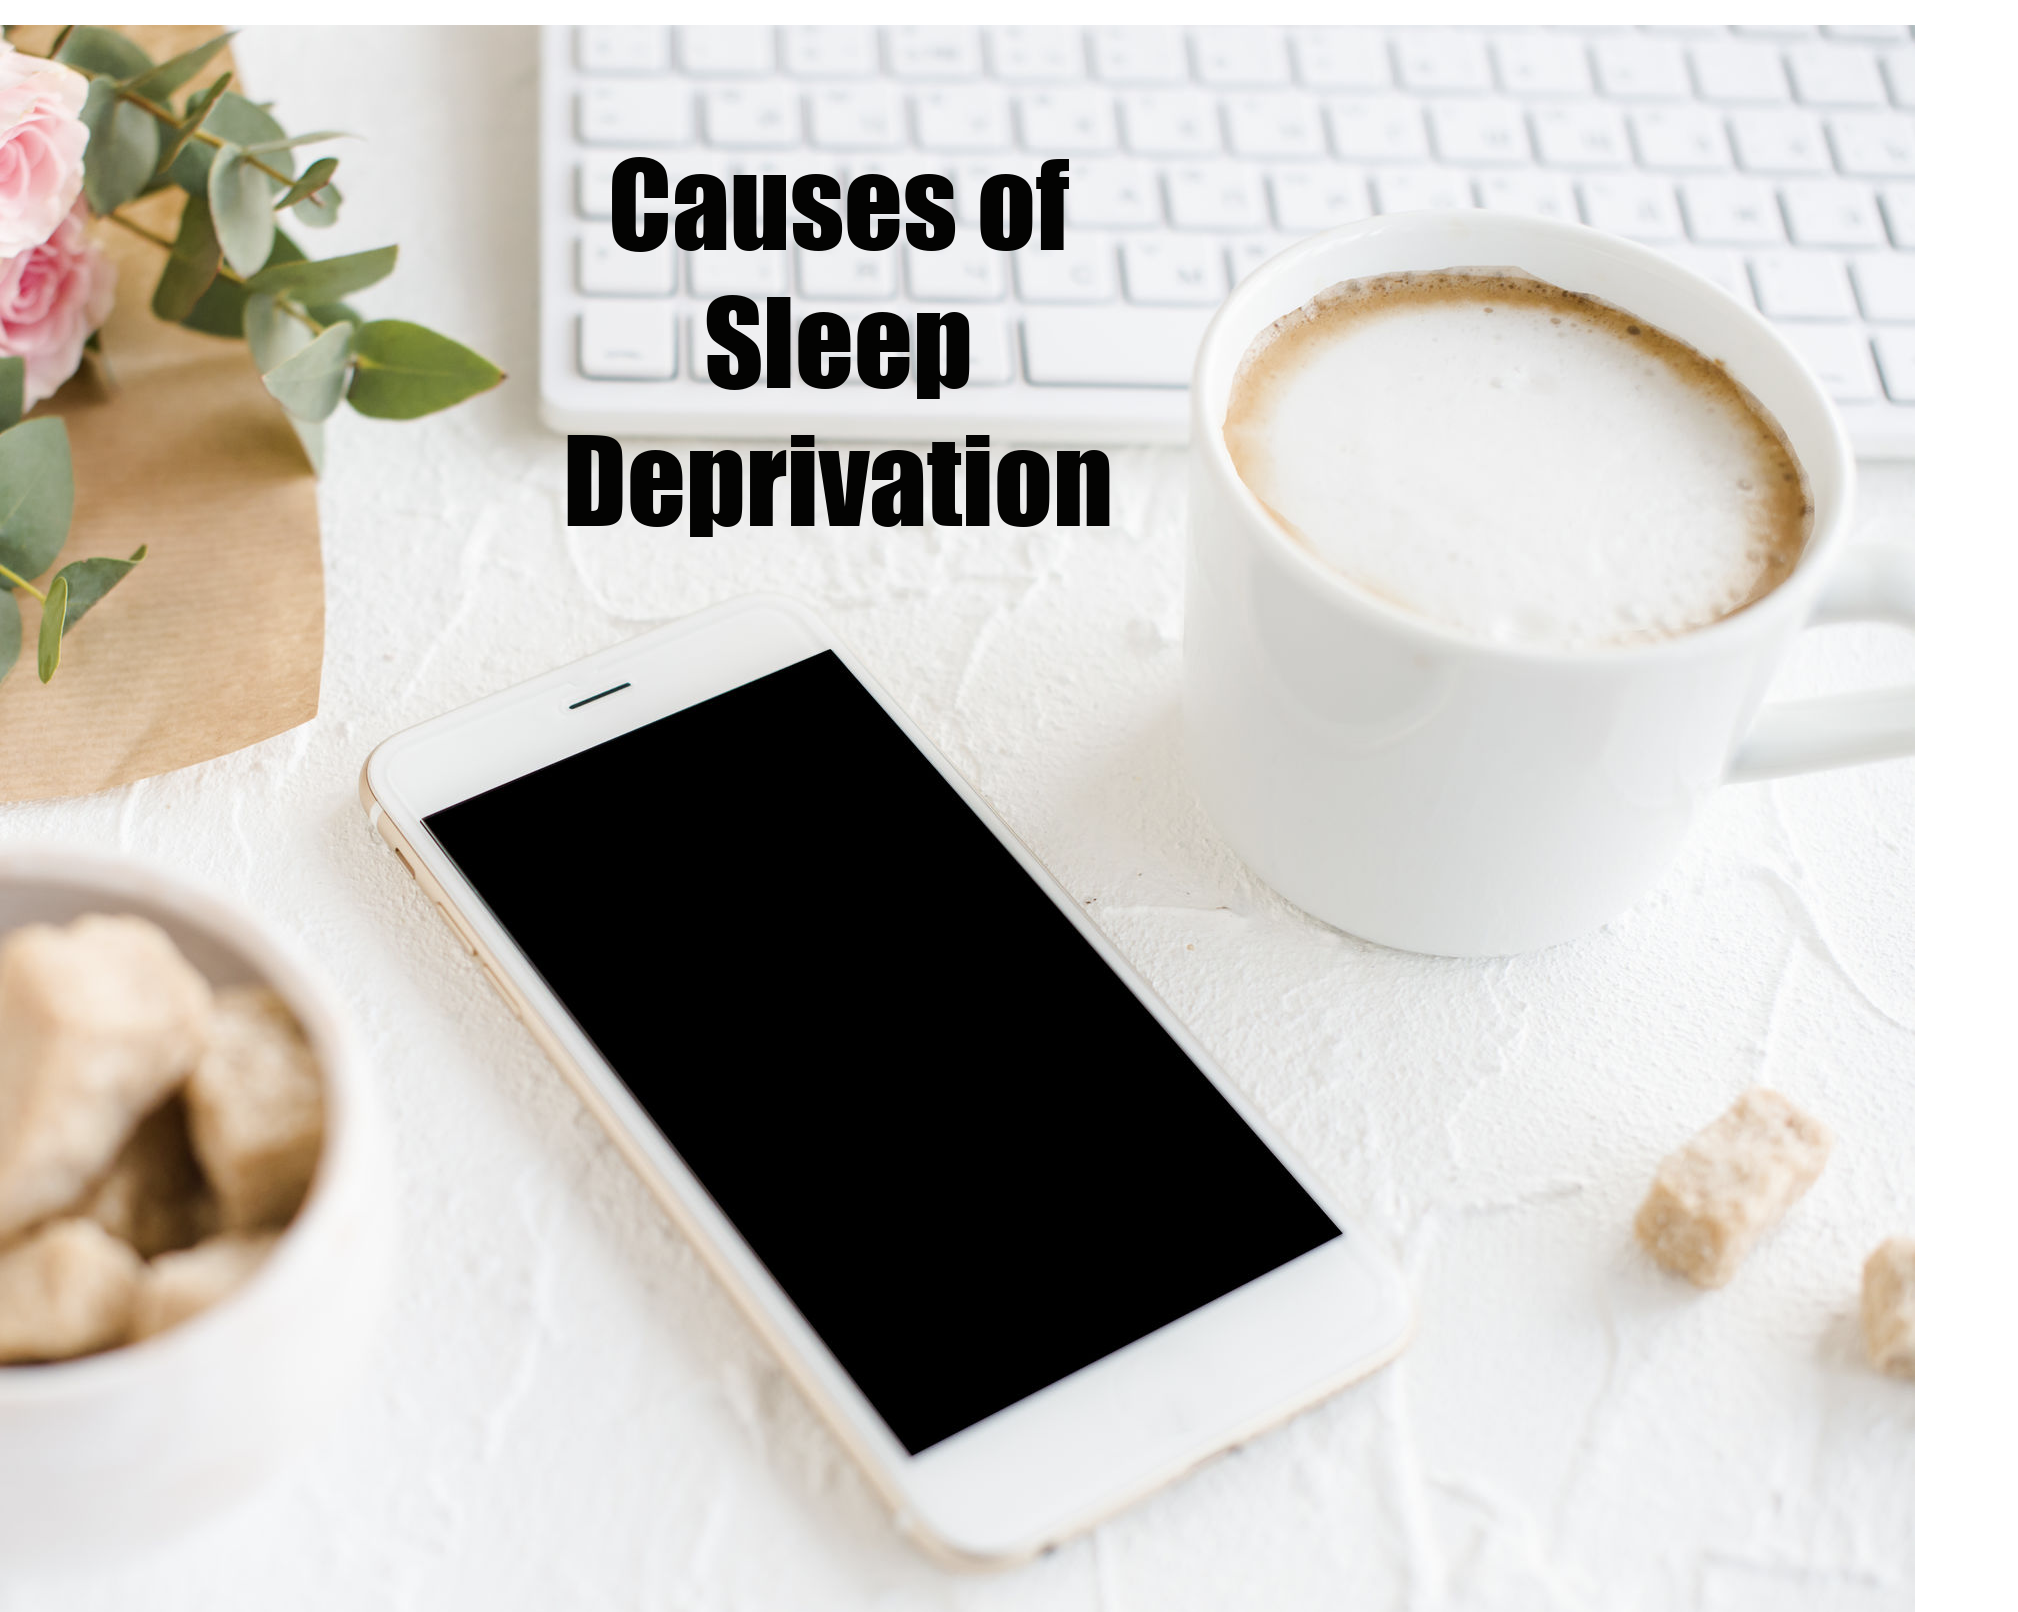 common causes of sleep deprivation